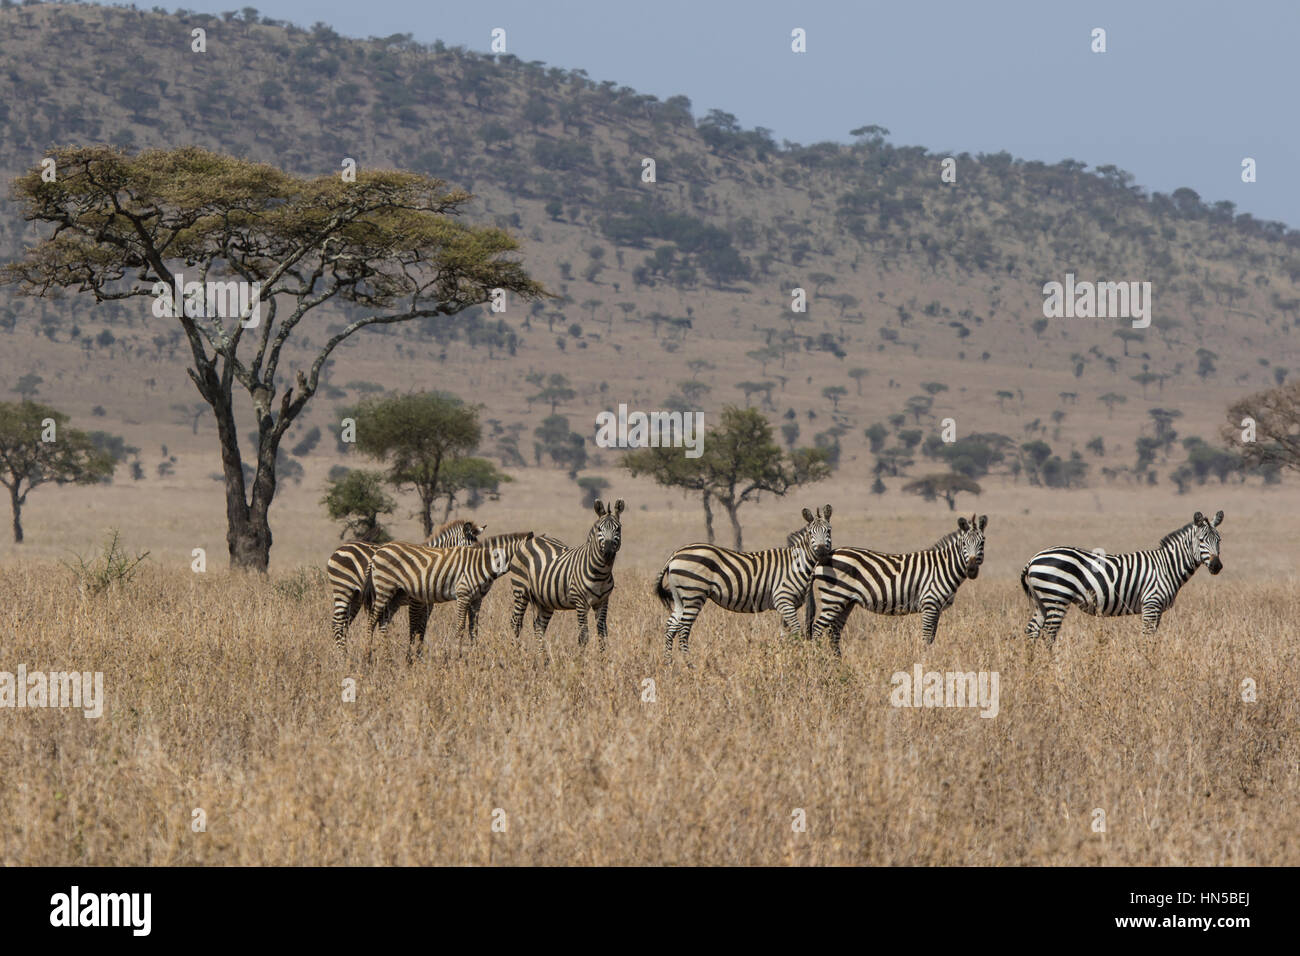 emphasis on family group of zebras standing in the savannah near Acacia on a hot sultry day - Stock Image